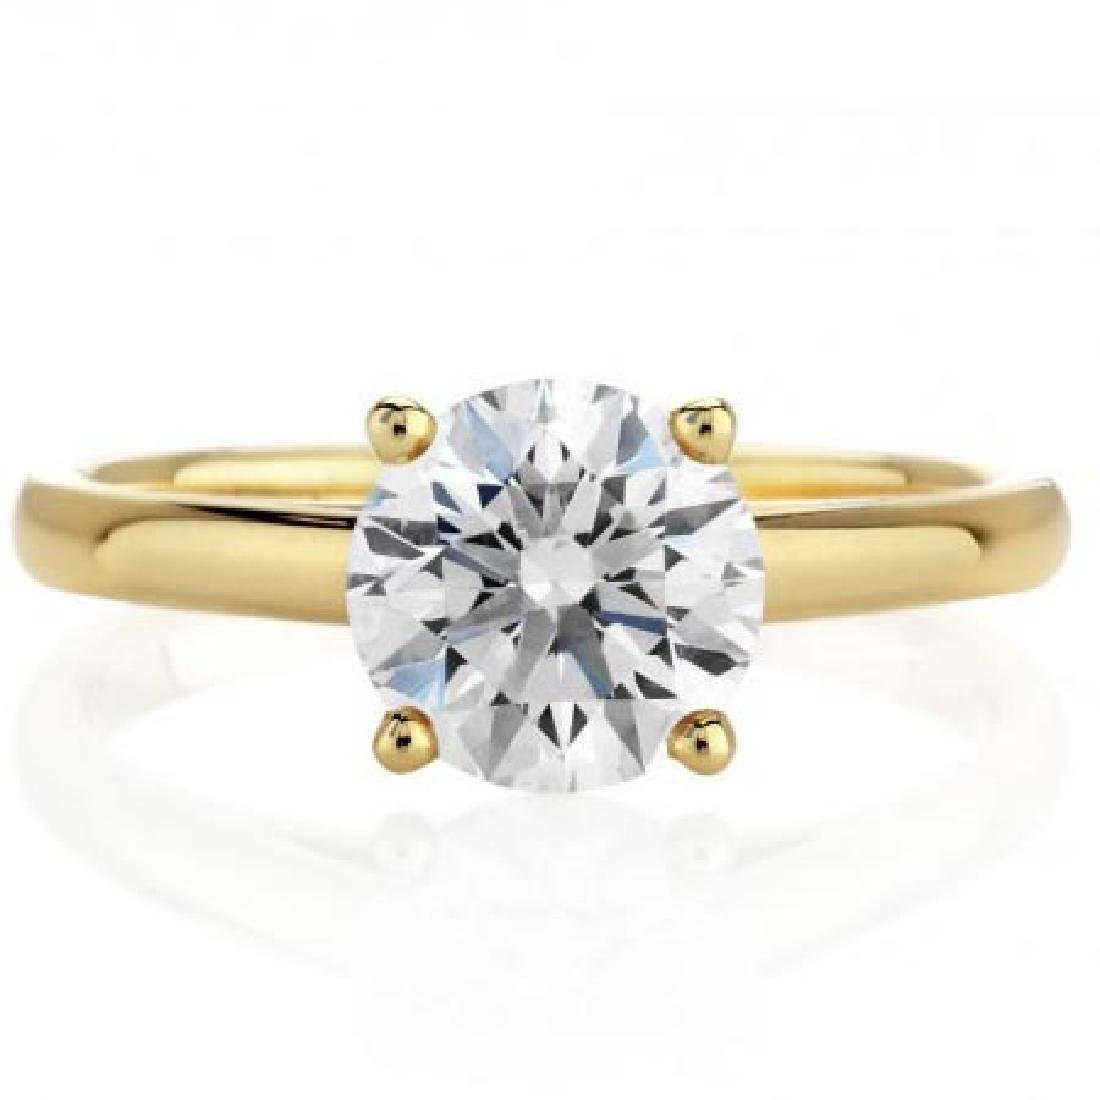 CERTIFIED 1.02 CTW ROUND J/VS2 SOLITAIRE RING IN 14K YE